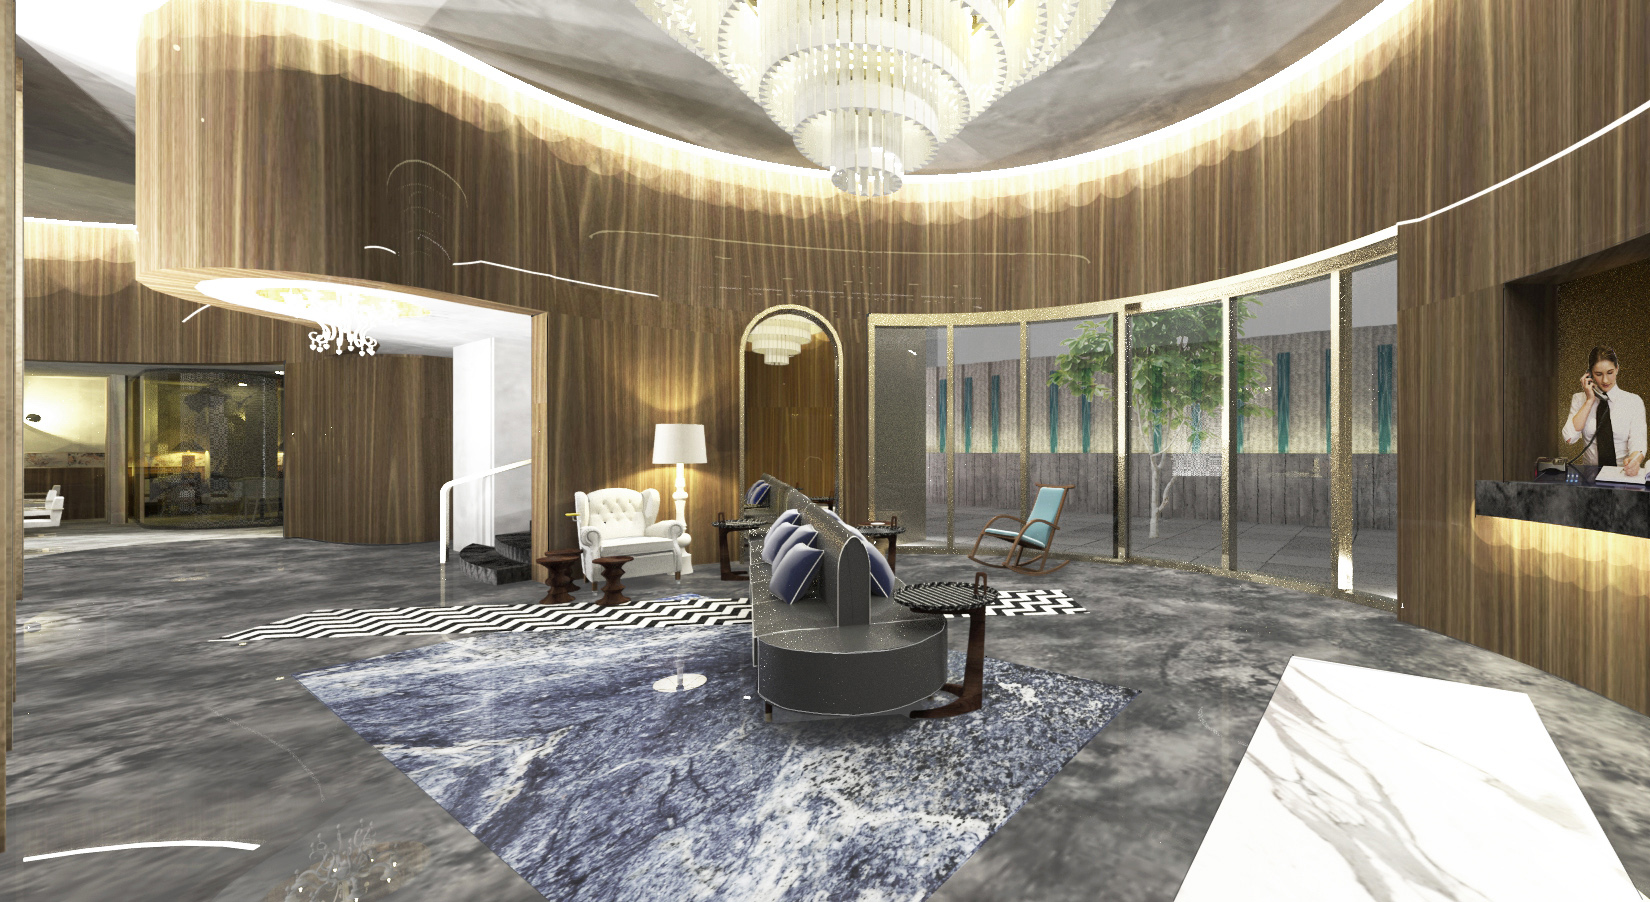 30 West 39th Street_PPA Web Content_Page_4.jpg